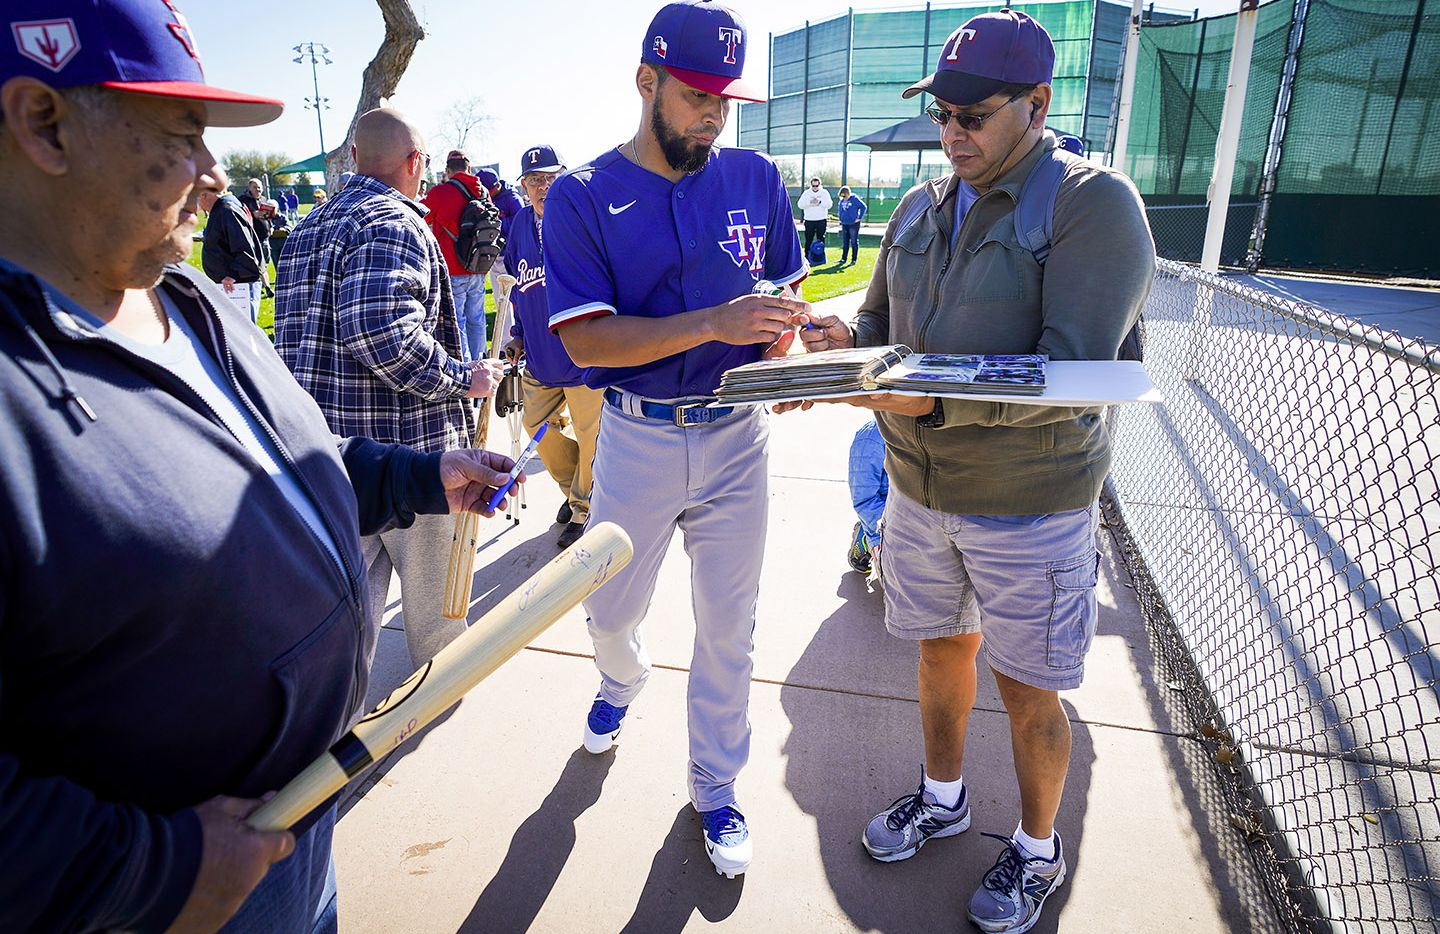 Texas Rangers catcher Robinson Chirinos signs autographs for fans before the first spring training workout for pitchers and catchers at the team's training facility on Wednesday, Feb. 12, 2020, in Surprise, Ariz.